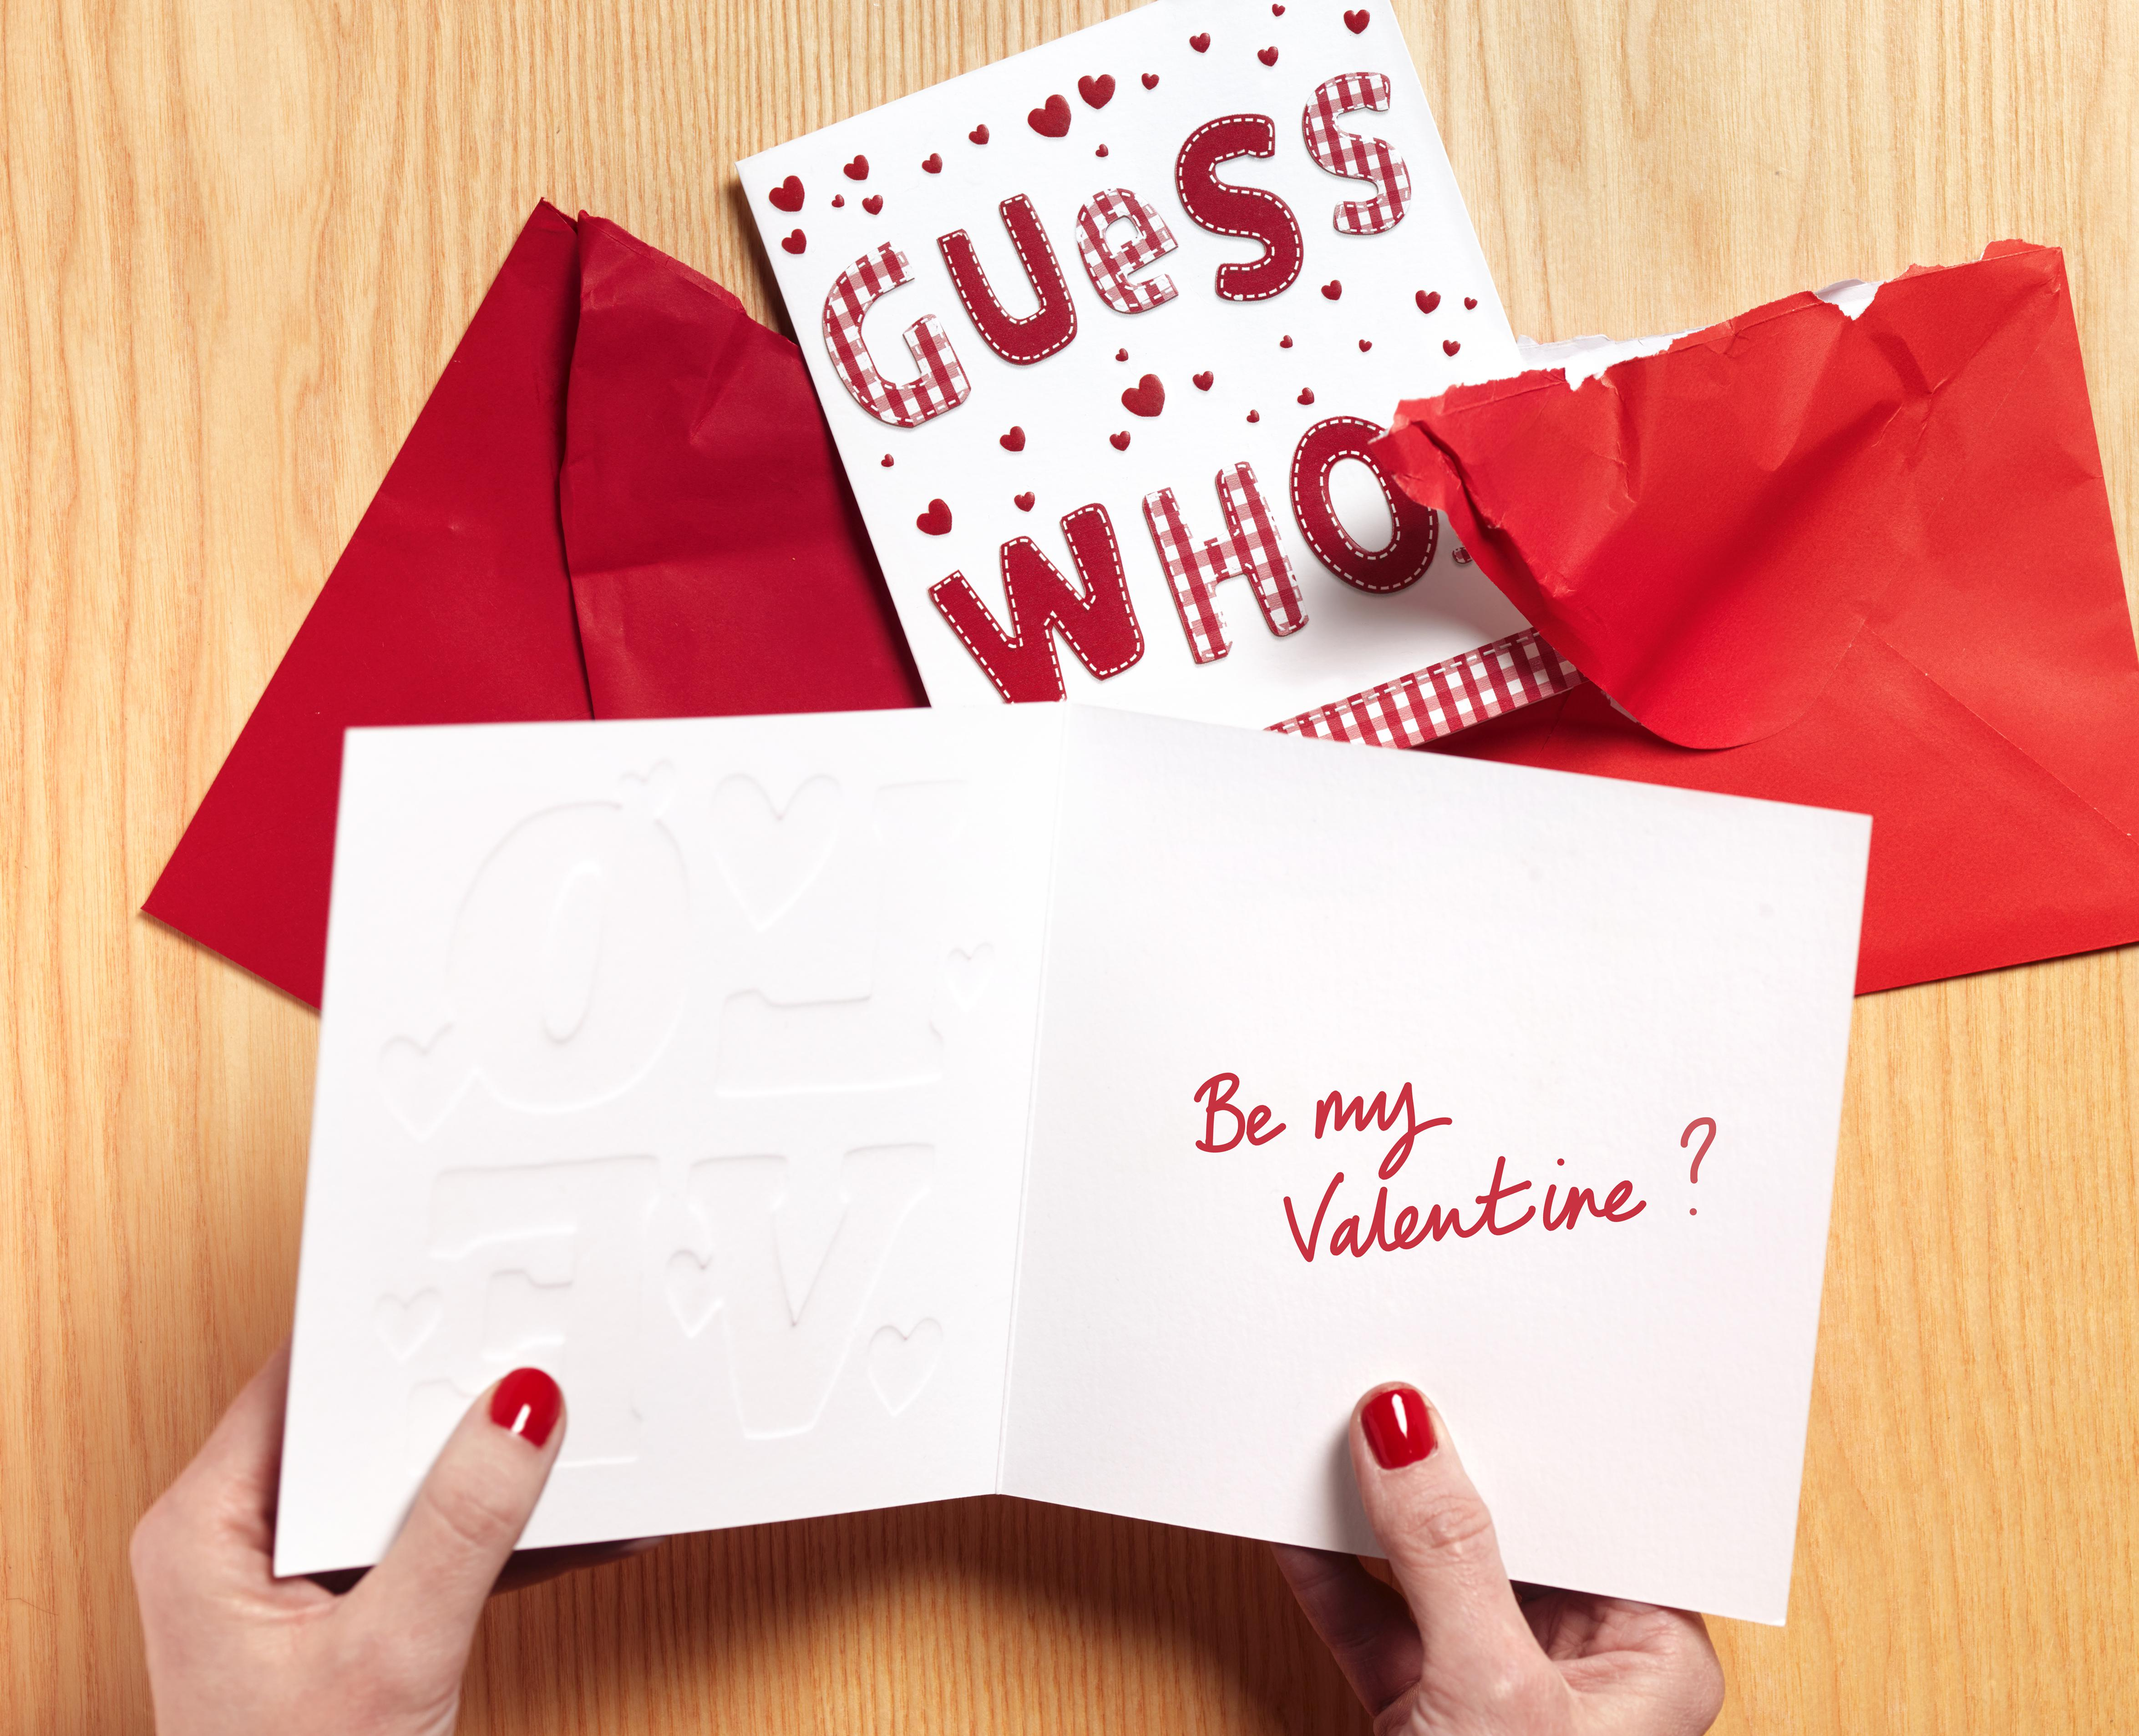 Quotes To Write In Valentines Card